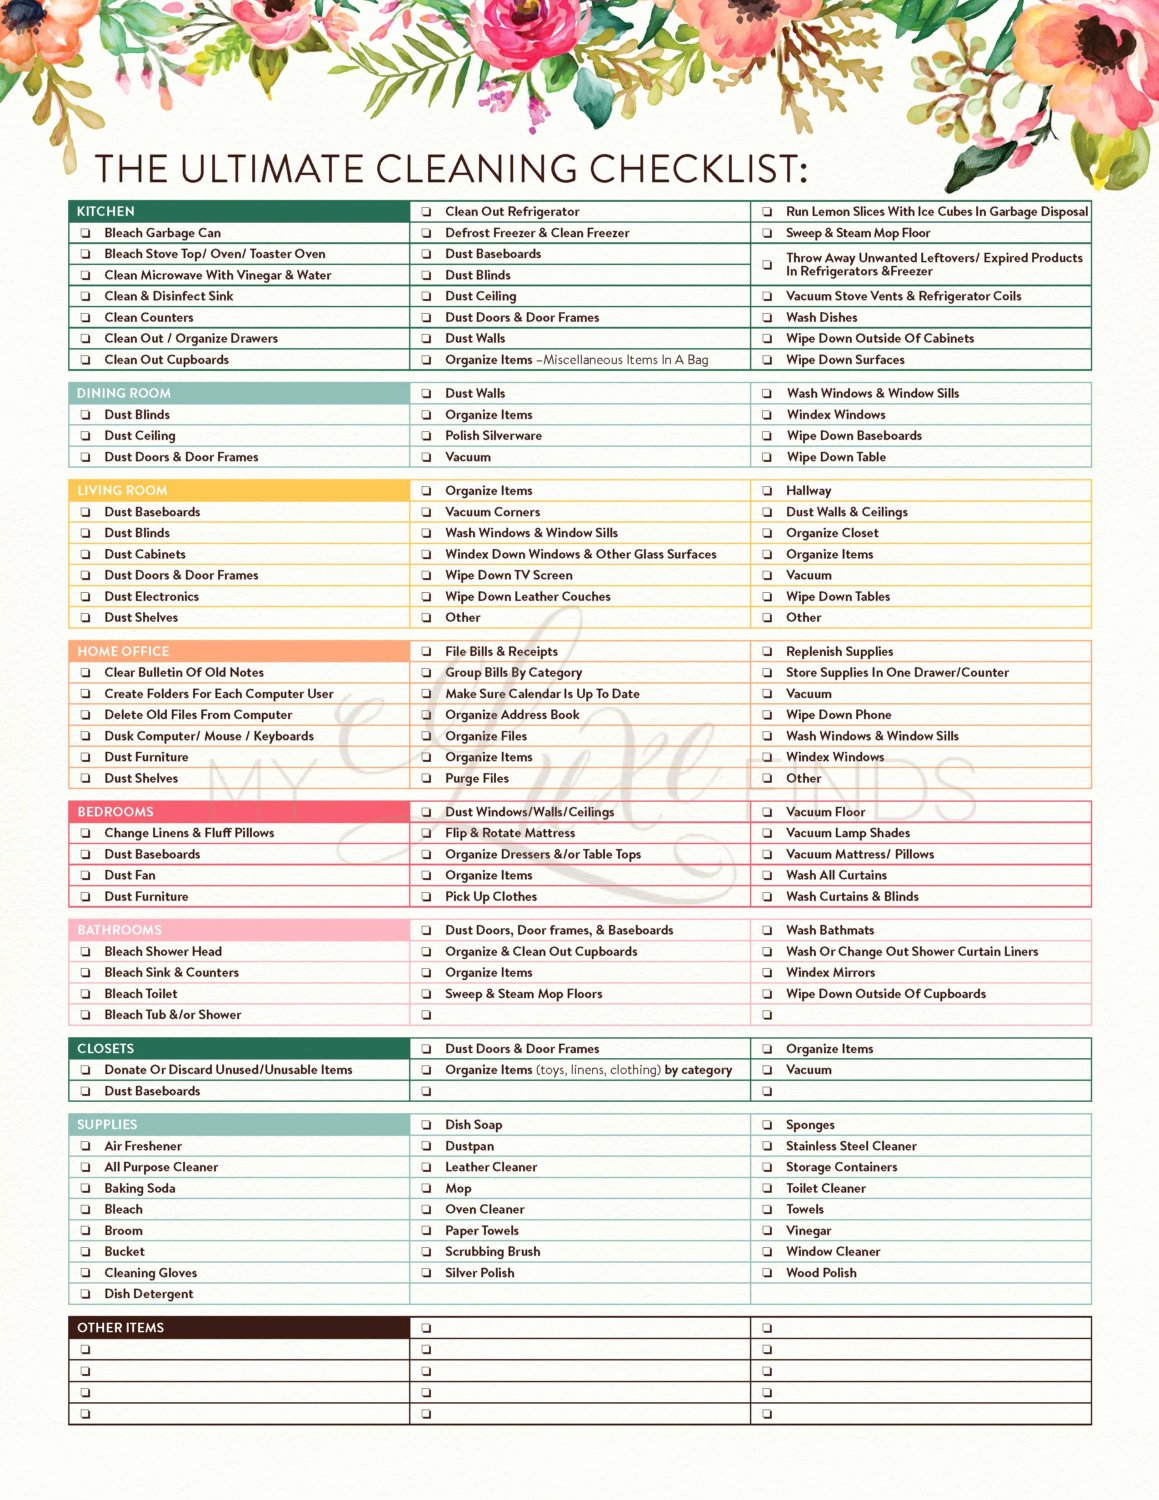 Cleaning Service Checklist Template Best Of the Ultimate House Cleaning Checklist Printable Pdf